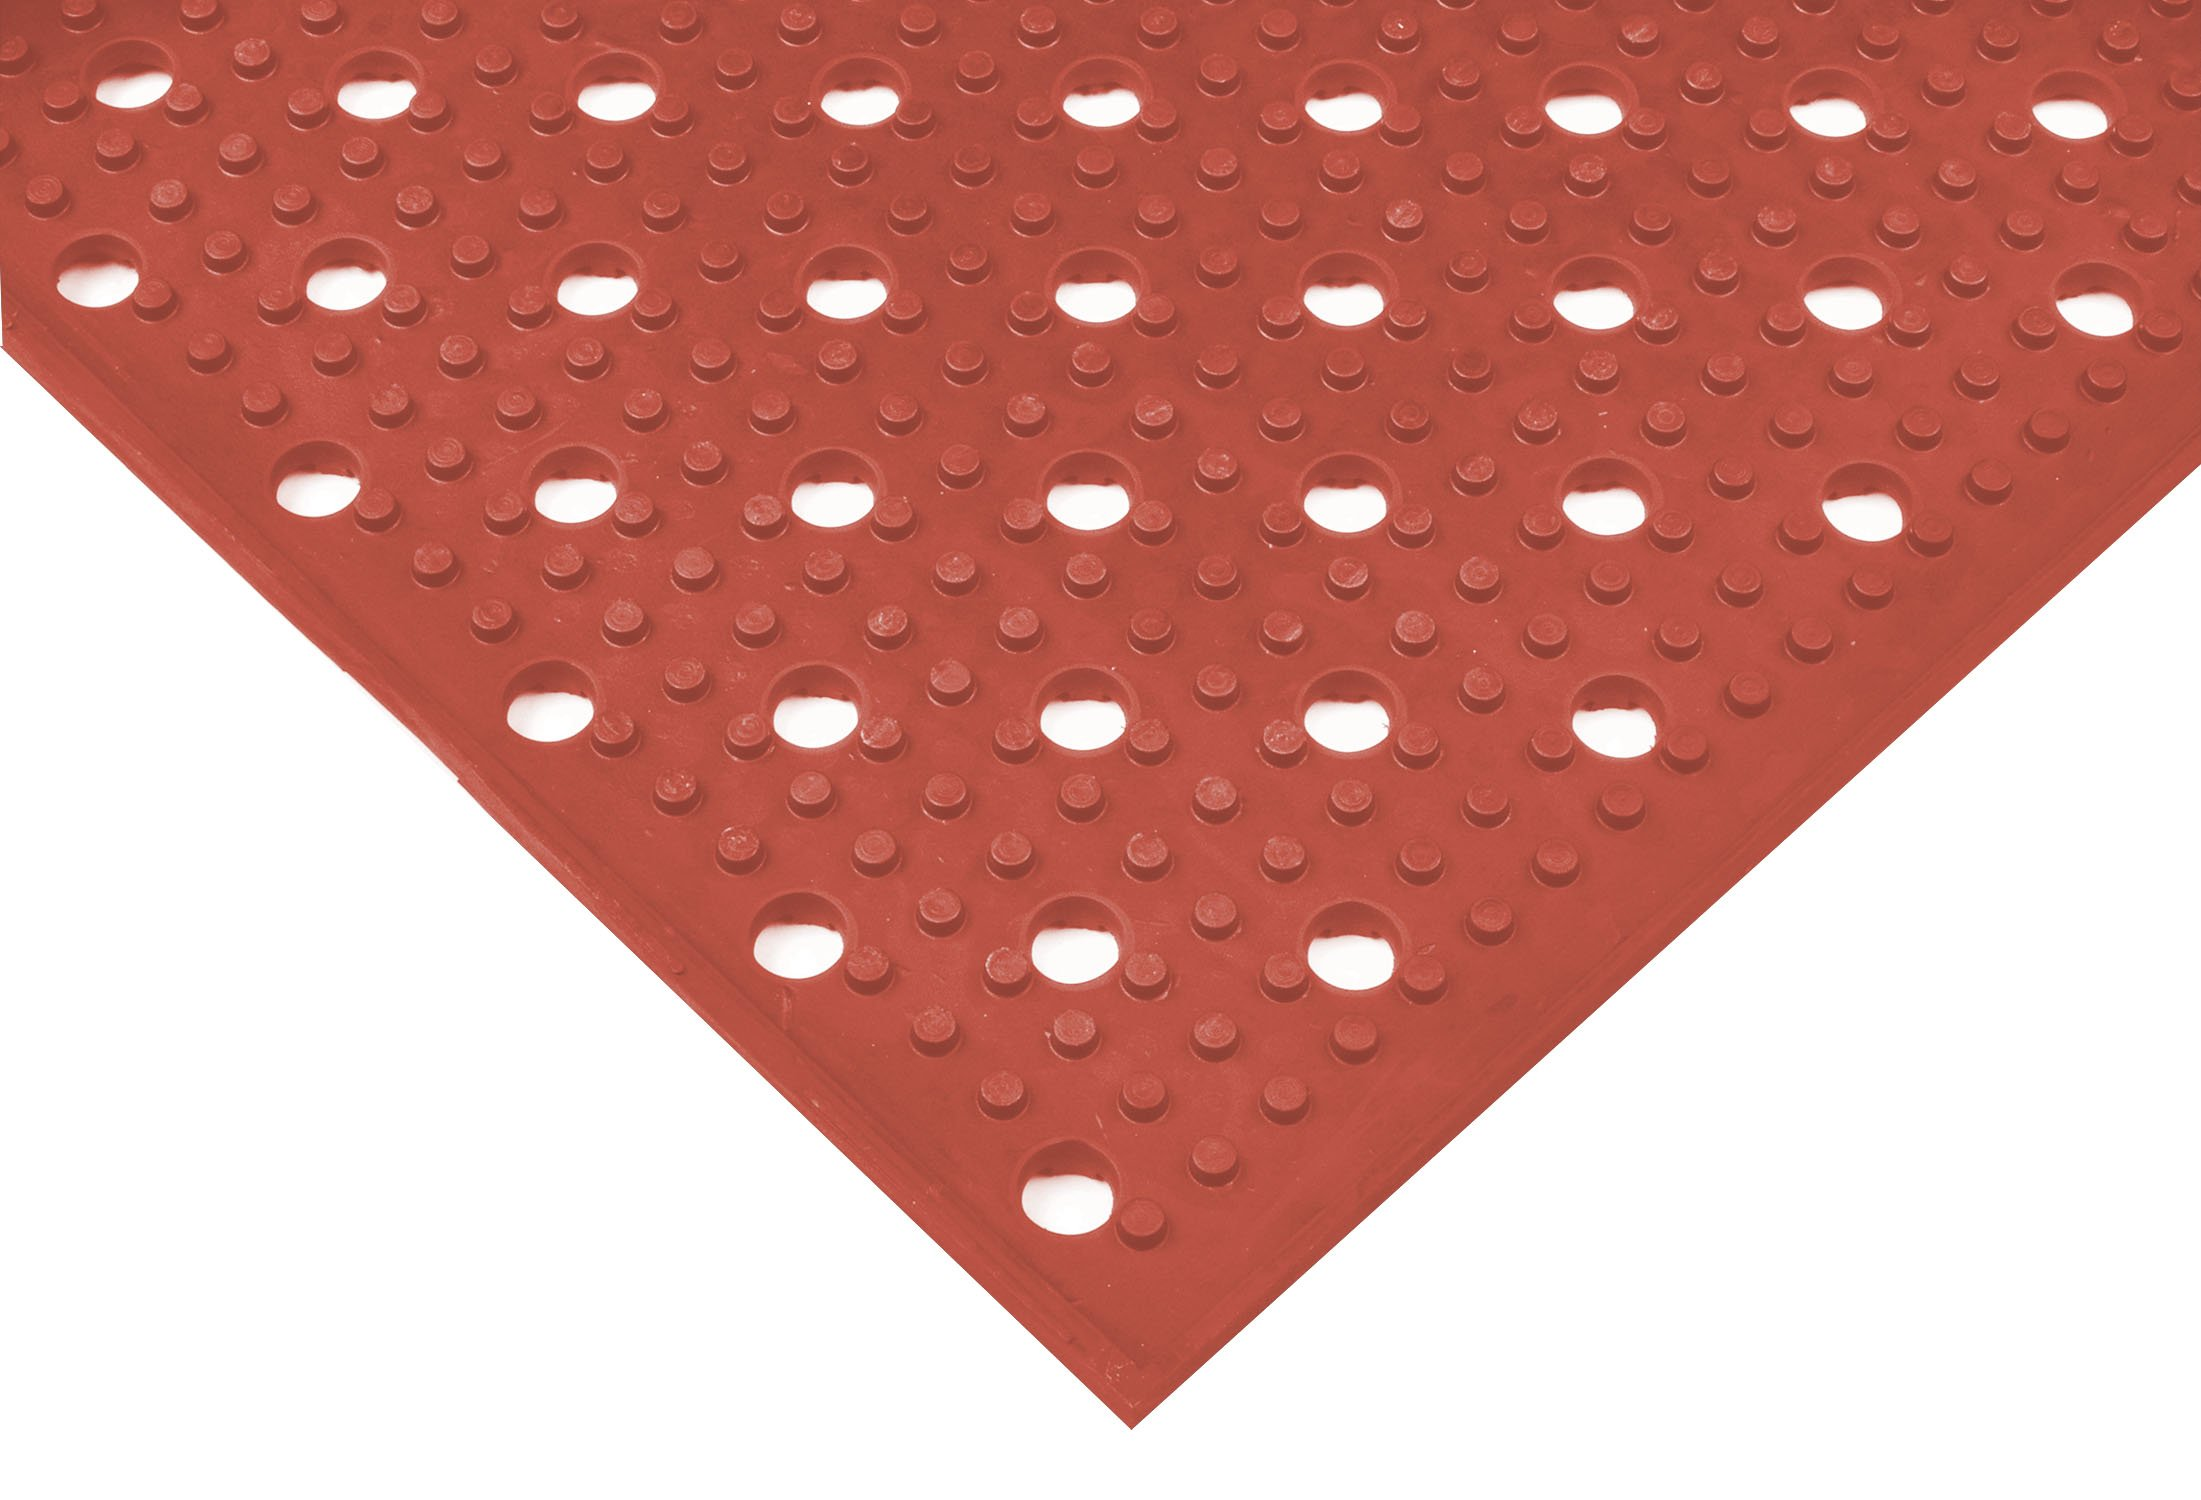 NoTrax T23 Heavy-Duty Rubber Multi-Mat II Safety/Anti-Fatigue Mat, for Wet or Greasy Areas, 3' Width x 8' Length x 3/8'' Thickness, Red